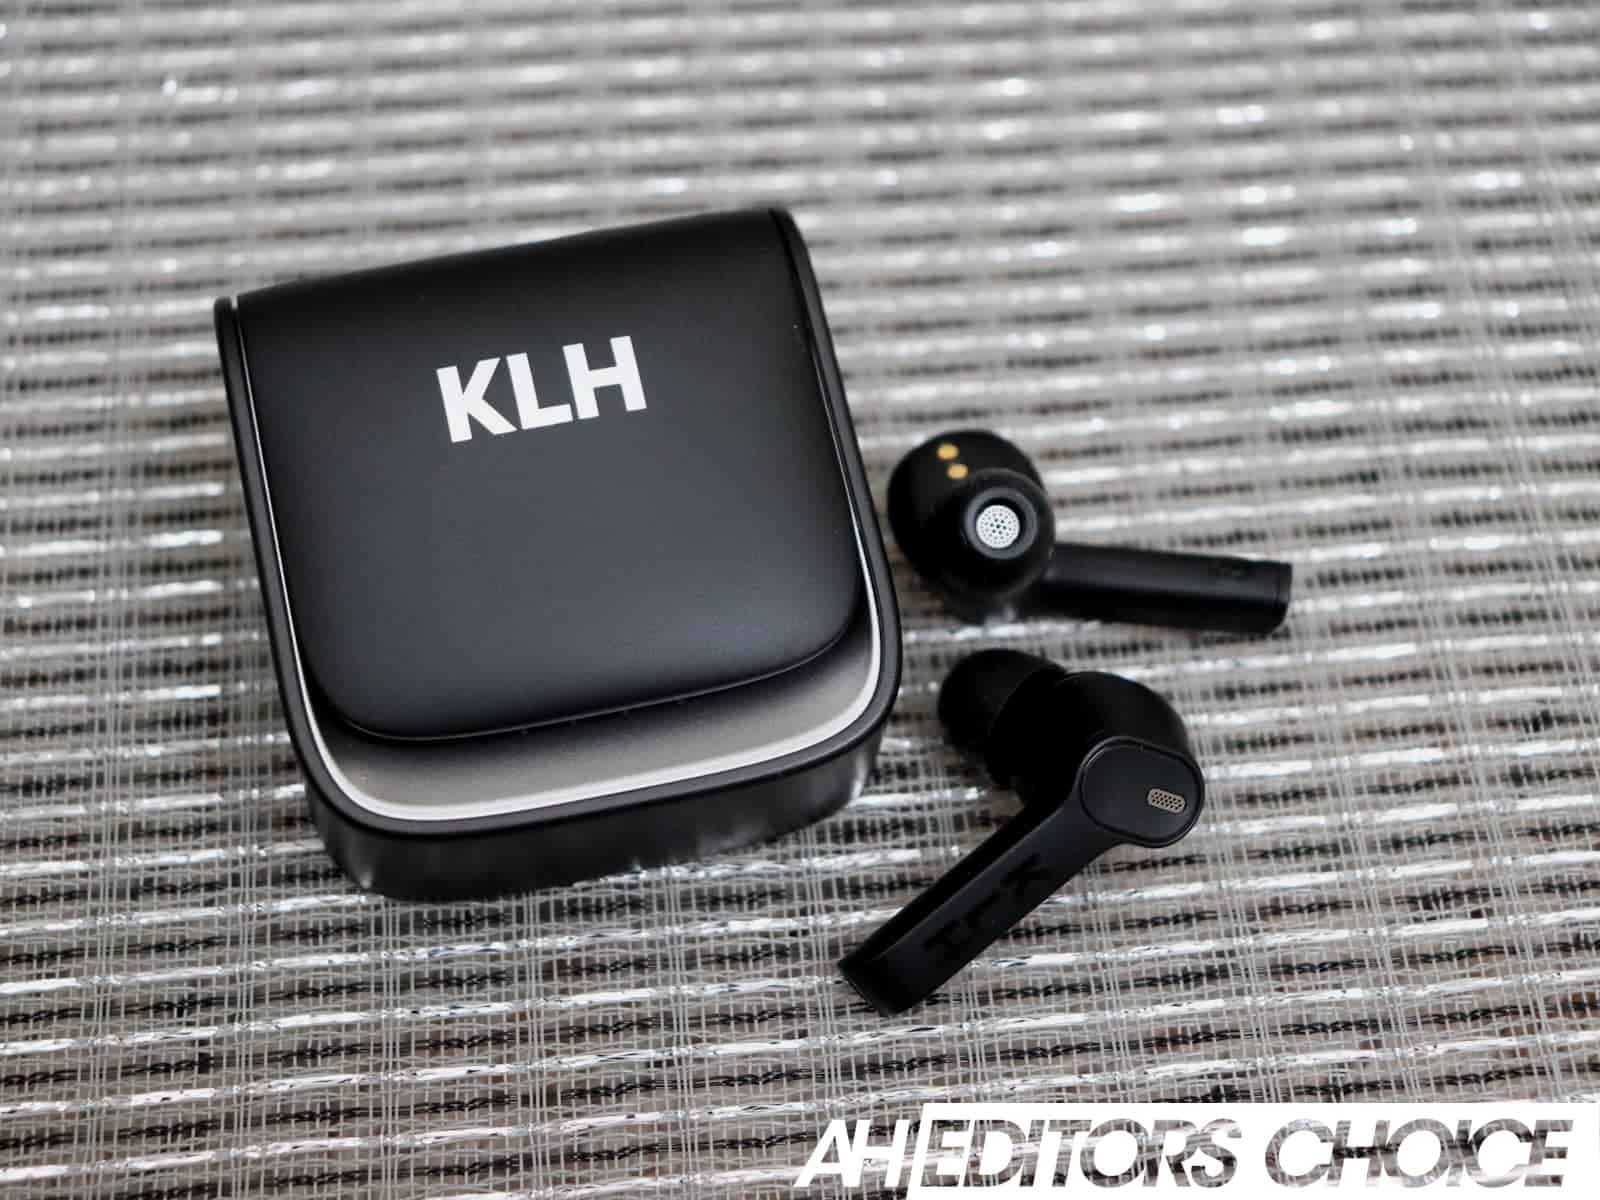 00 KLH Fusion Review title DG AH 2021 EC version best headphones oneplus 9